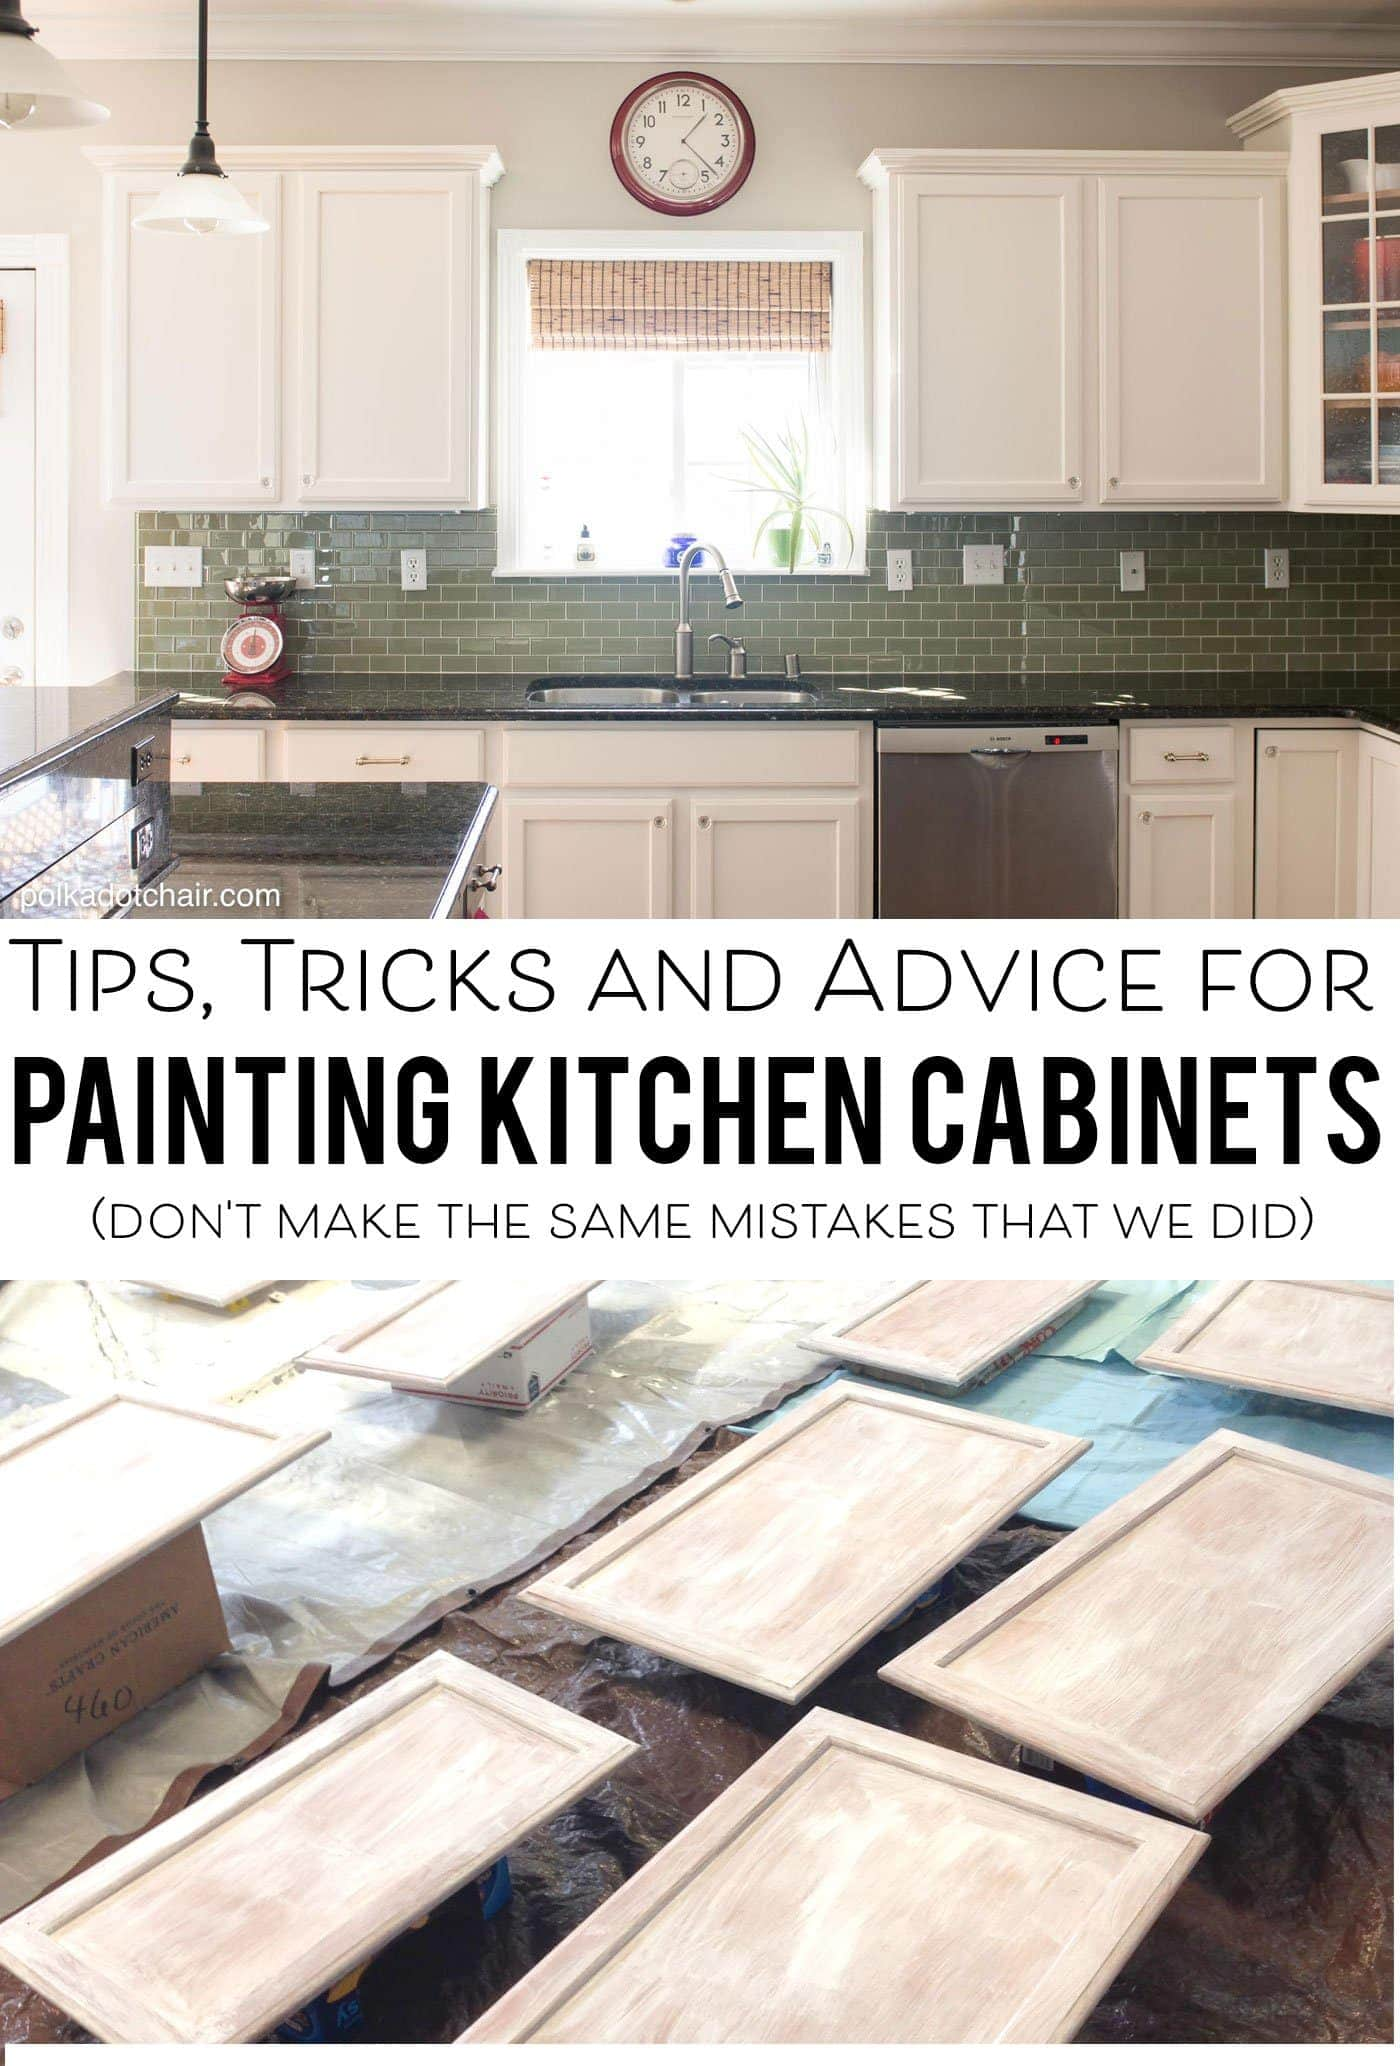 How To Paint Kitchen Cabinets White With A Sprayer Tips For Painting Kitchen Cabinets The Polka Dot Chair